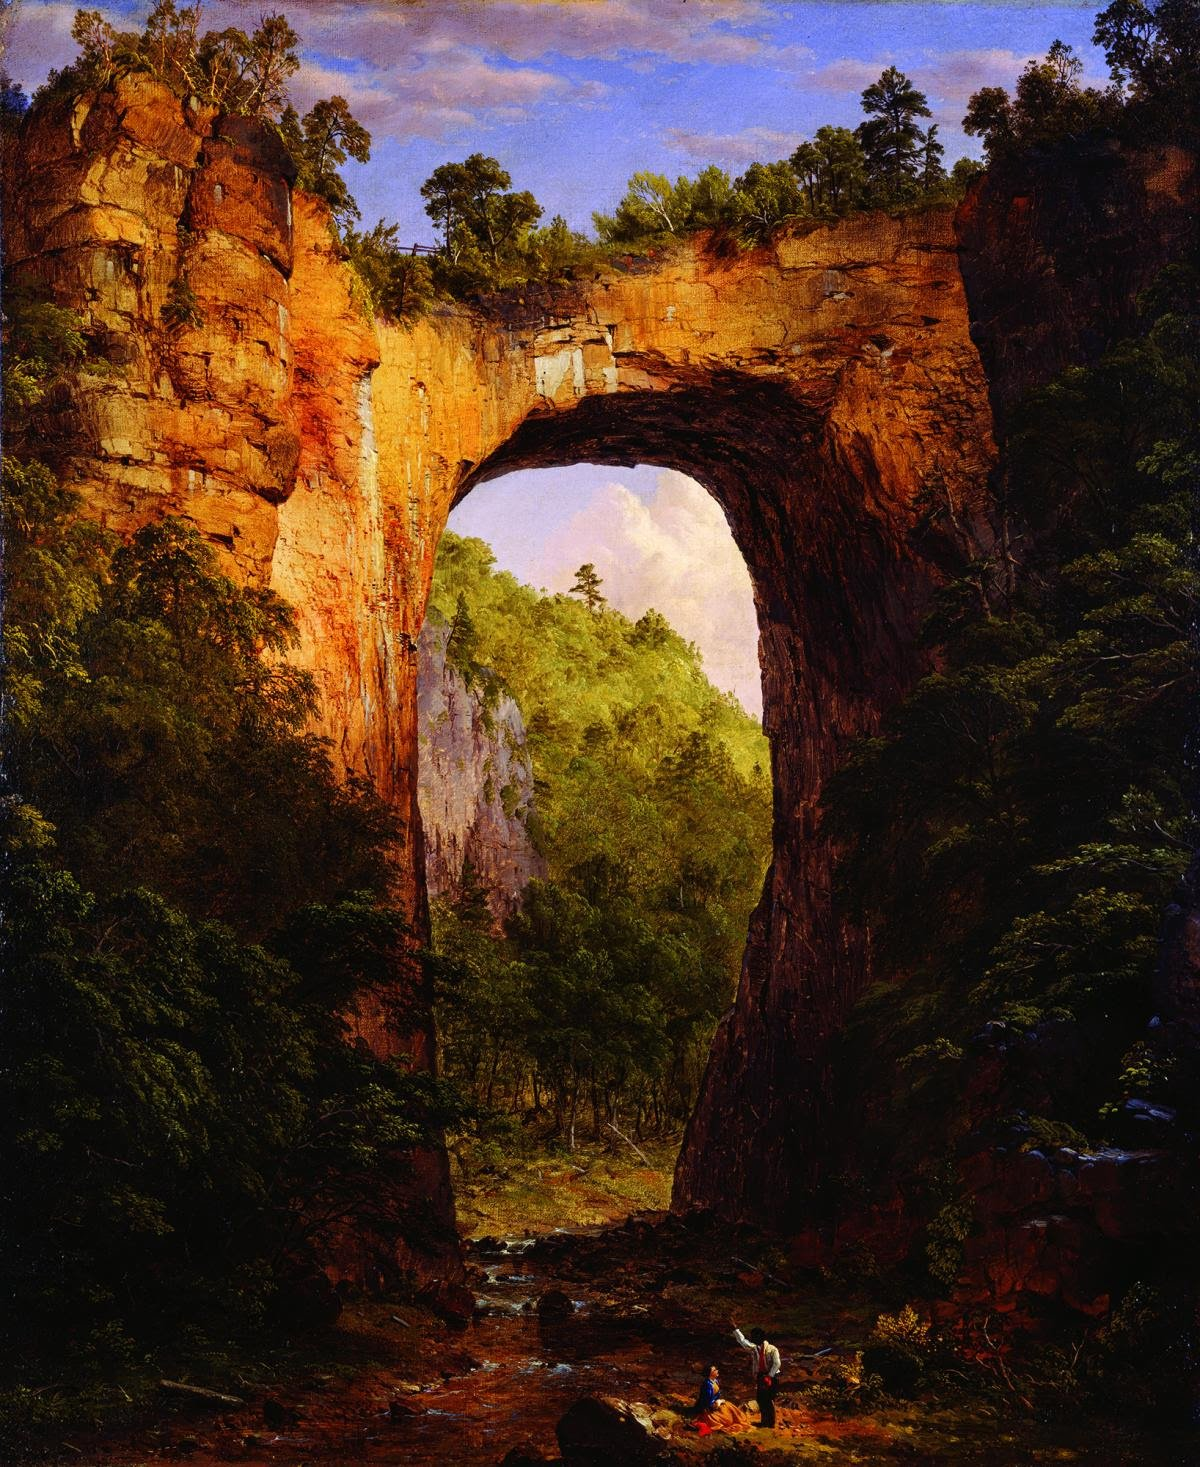 Frederic Edwin Church, The Natural Bridge, Virginia, 1852, oil on canvas, The Fralin Museum of Art at the University of Virginia, Gift of Thomas Fortune Ryan.